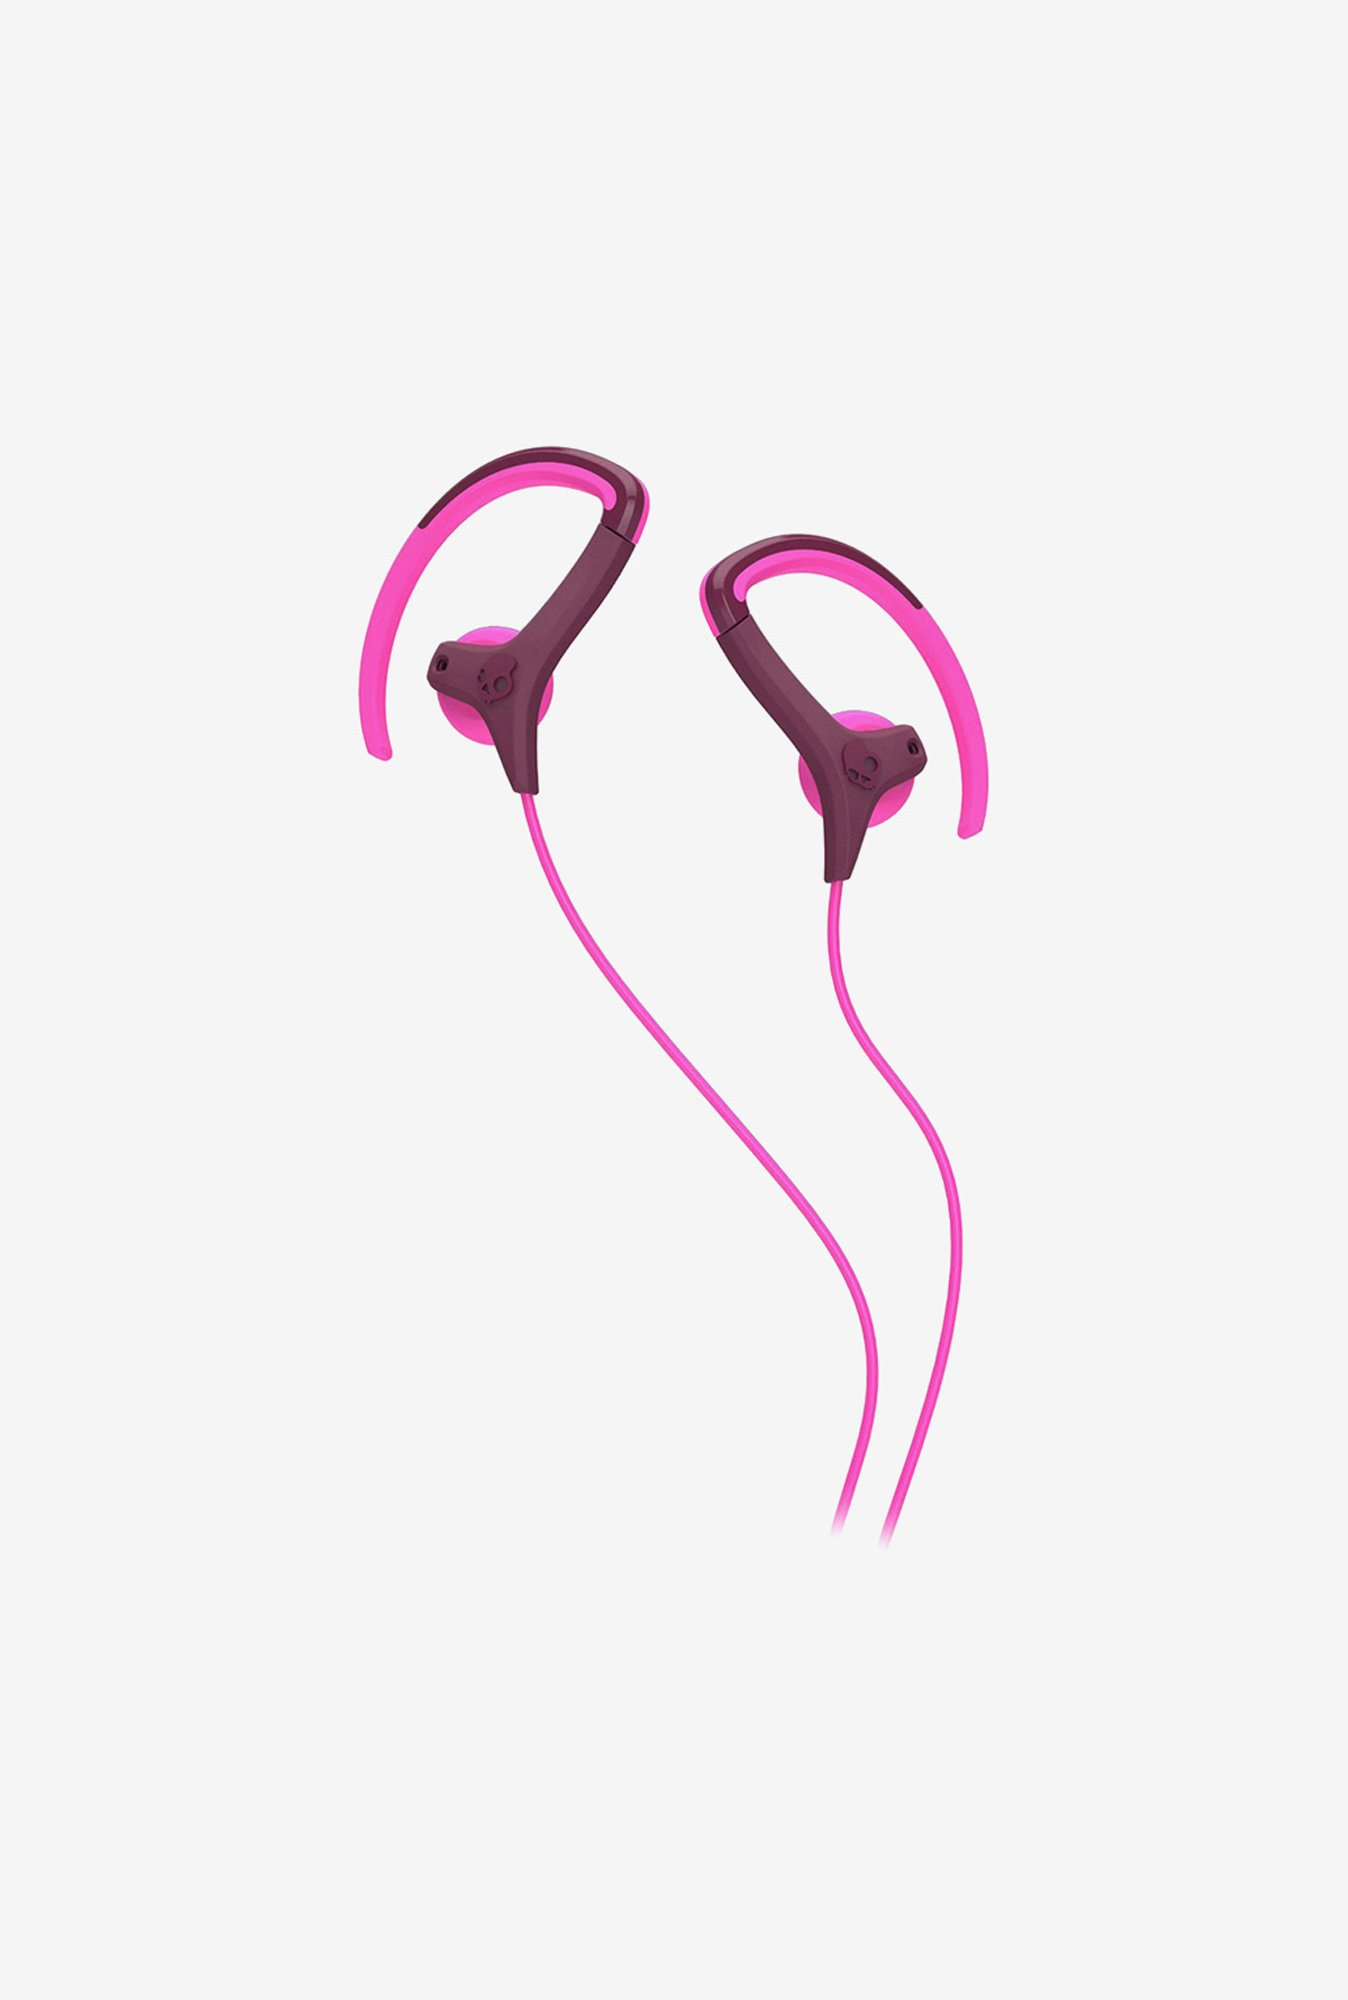 Skullcandy Chops 2.0 S4CHHZ-449 Headphone Plum Pink